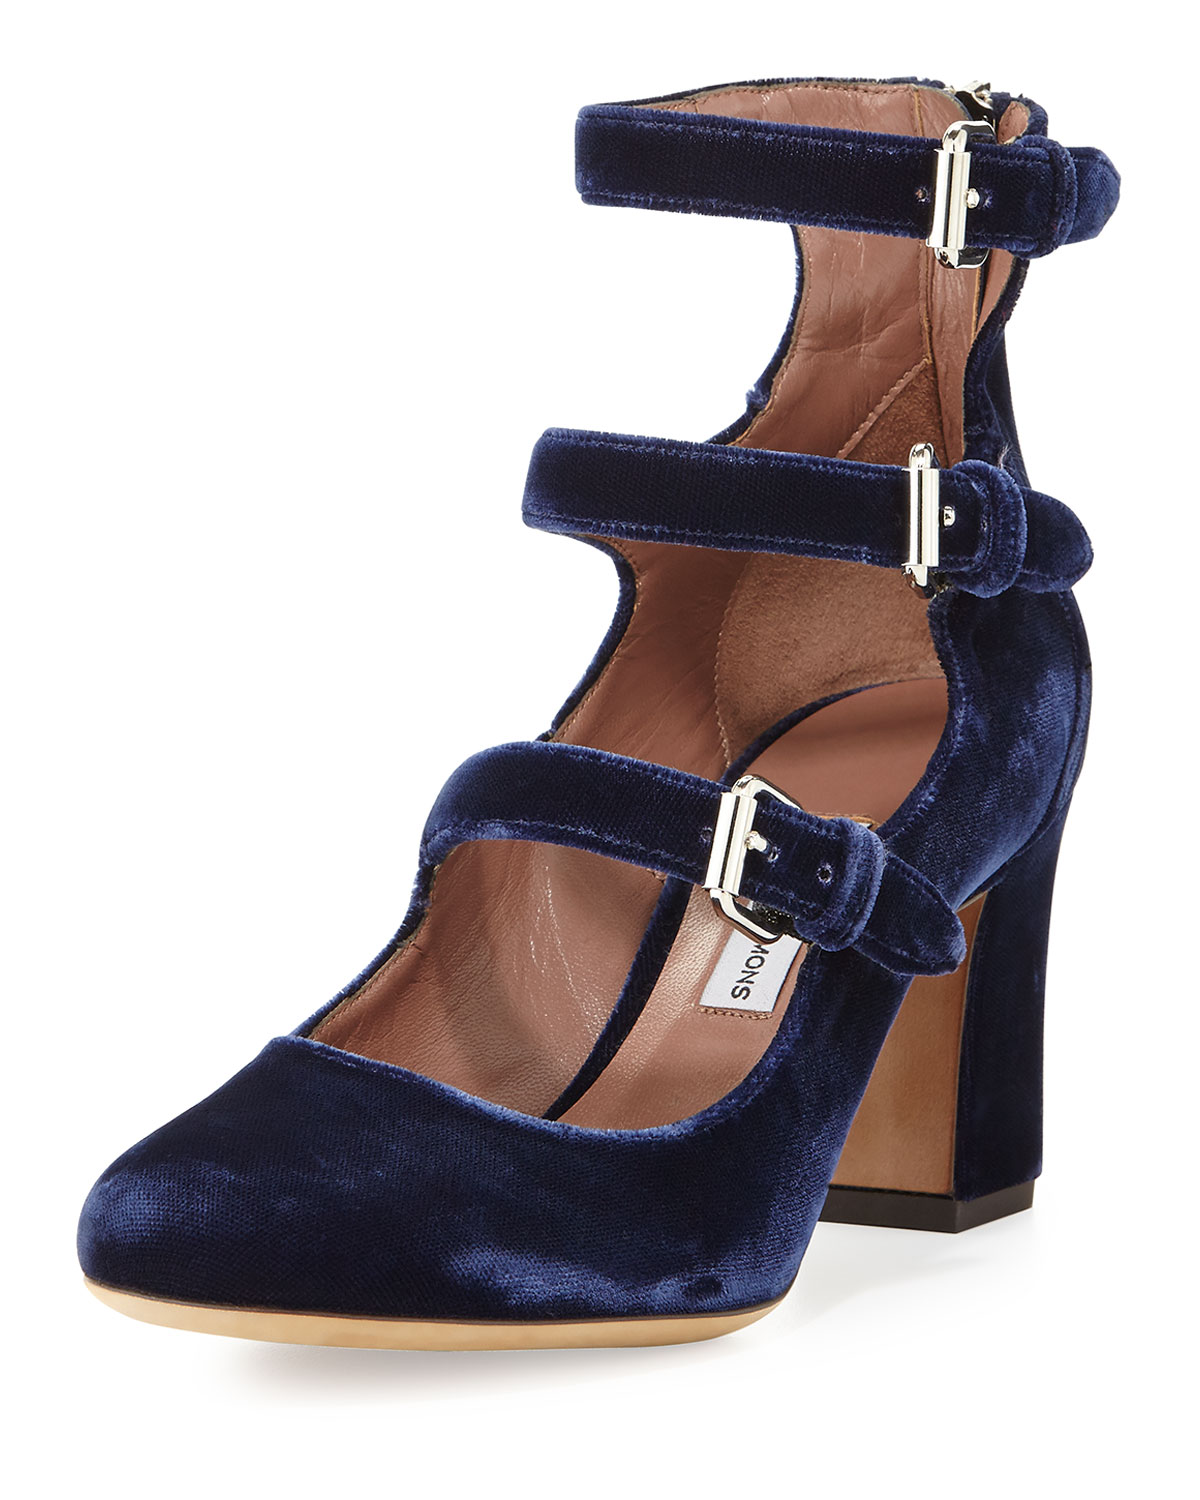 Tabitha Simmons Ginger Velvet Three-Strap Pumps, Blue